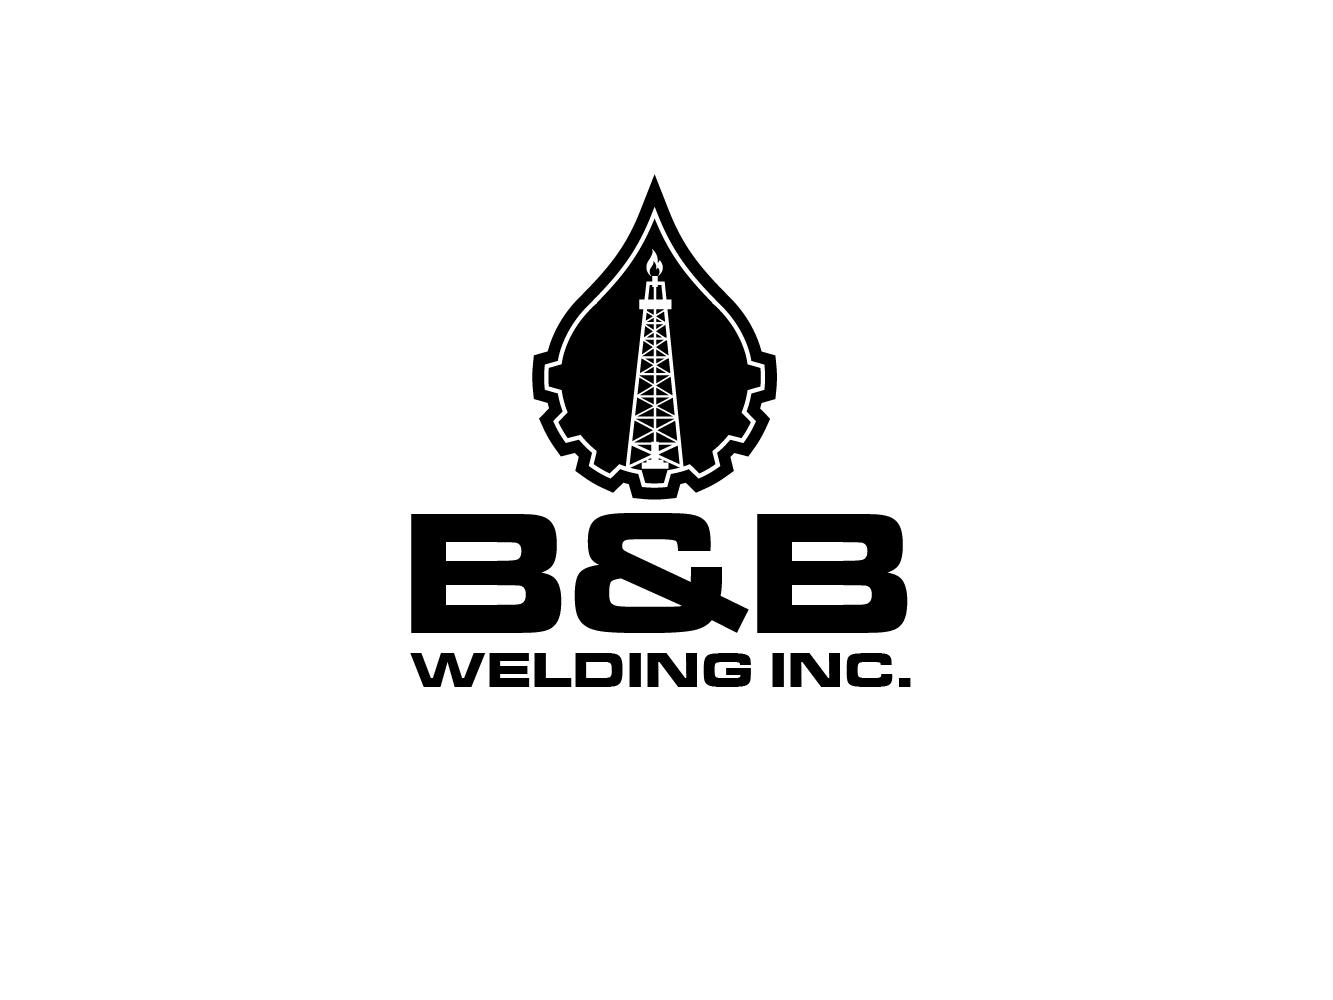 Logo Design by Cutris Lotter - Entry No. 10 in the Logo Design Contest Fun Logo Design for B&B Welding Inc..